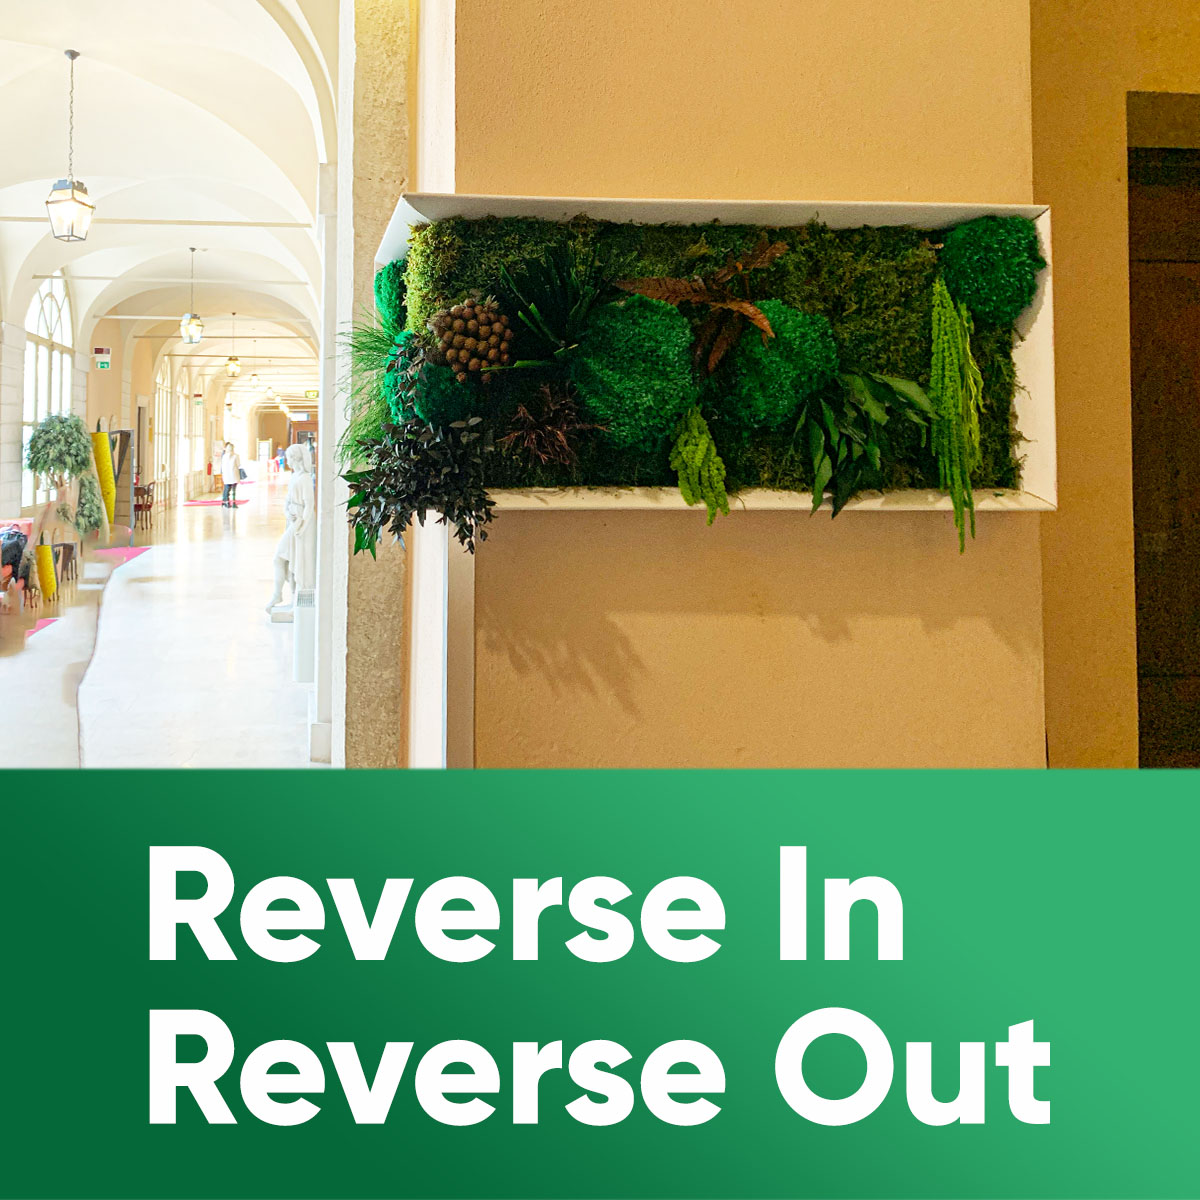 REVERSE IN - REVERSE OUT